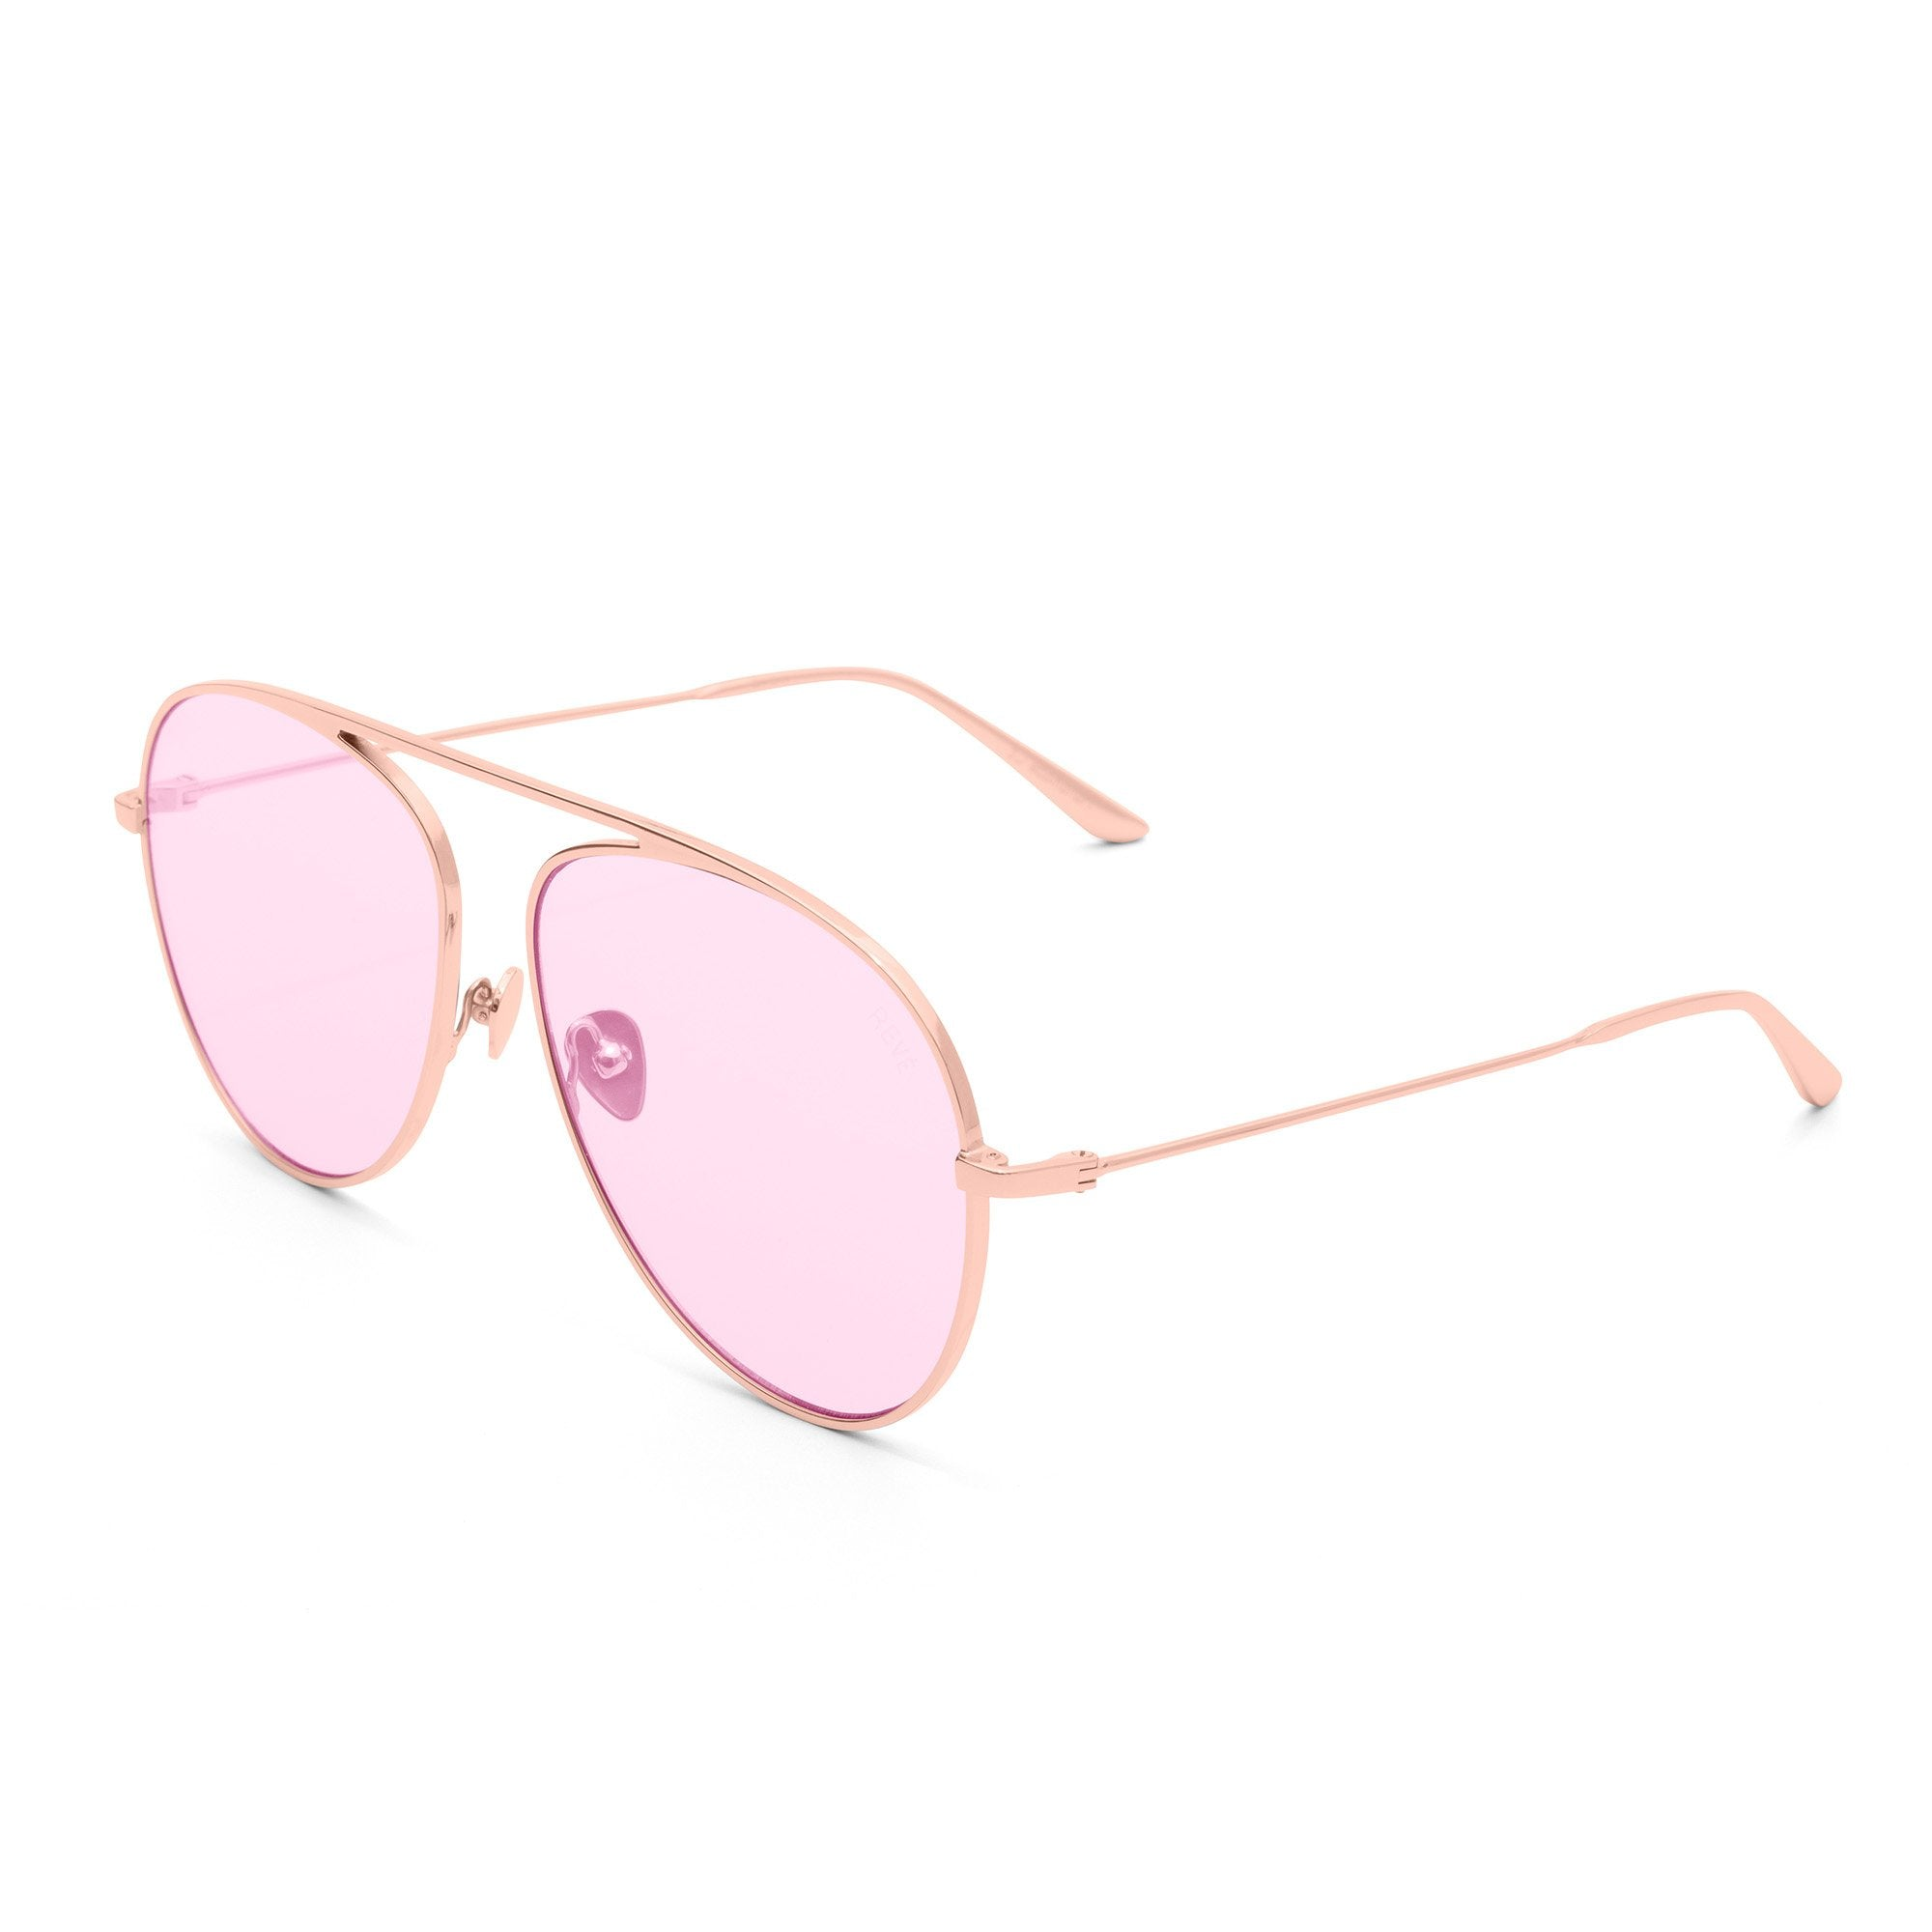 REVE by RENE jellybean sunglasses pink